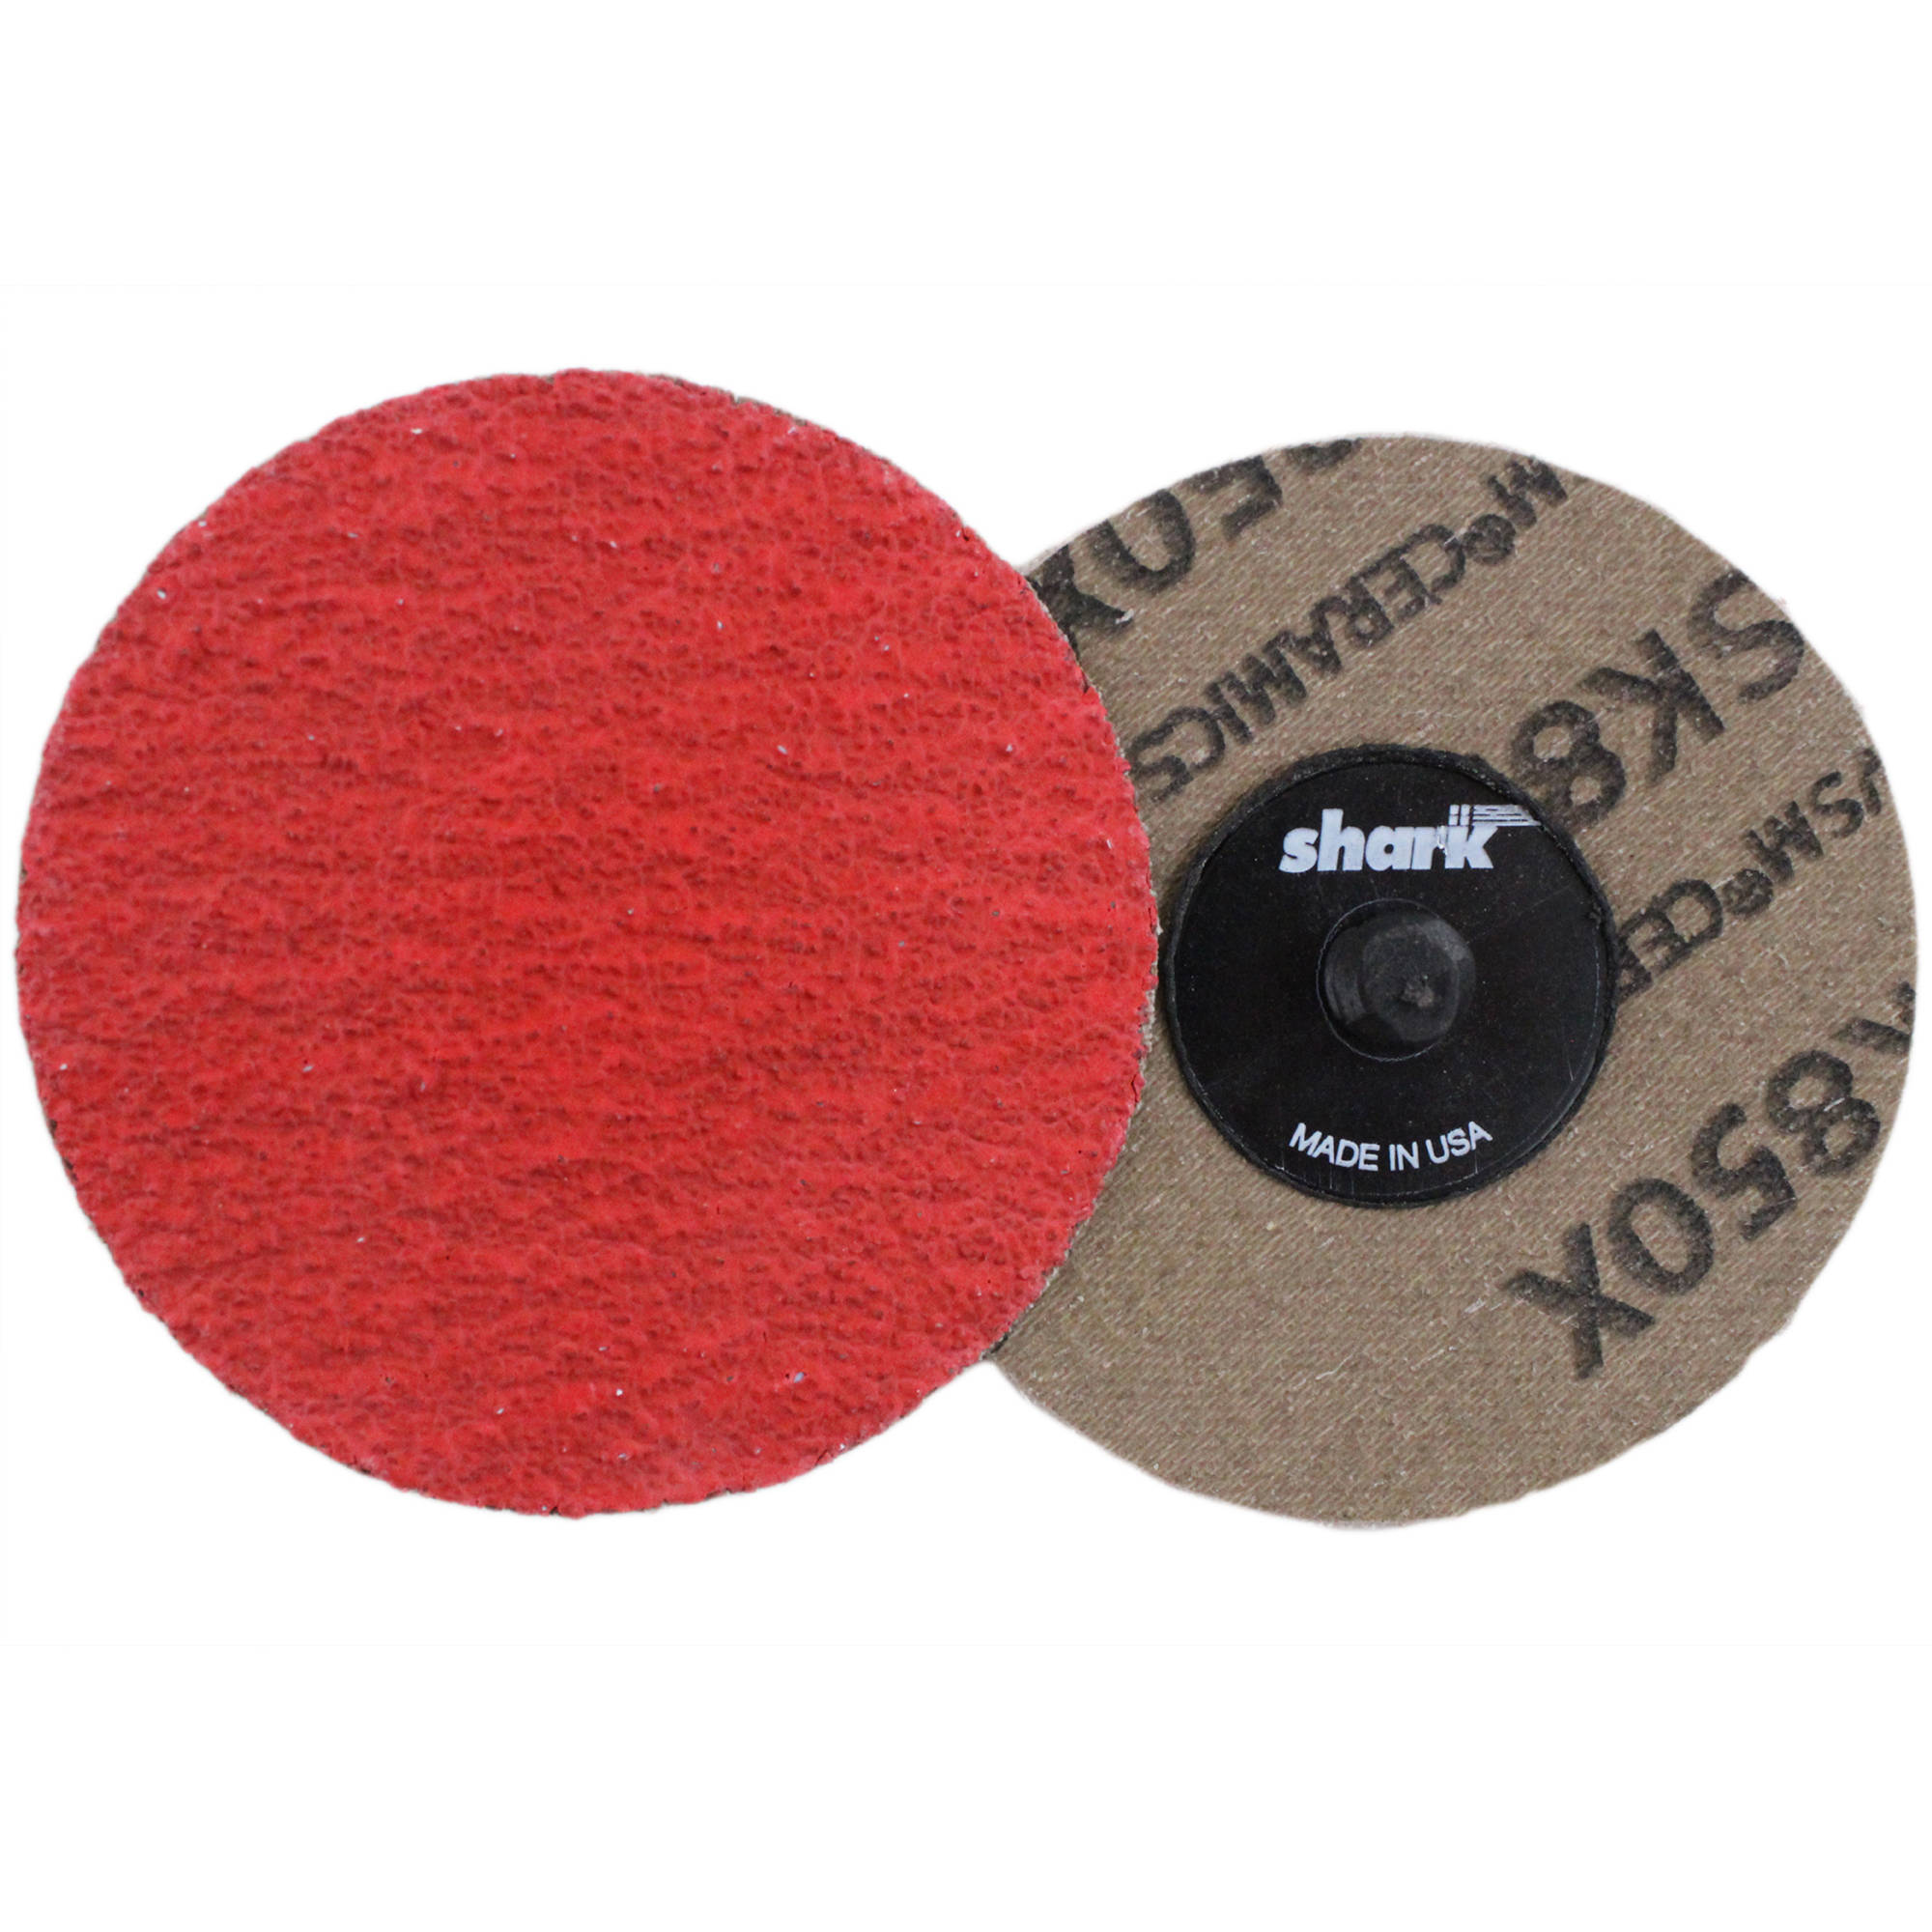 "Shark Red Ceramic Grinding Discs, 3"", 25-Pack, 24 Grit"